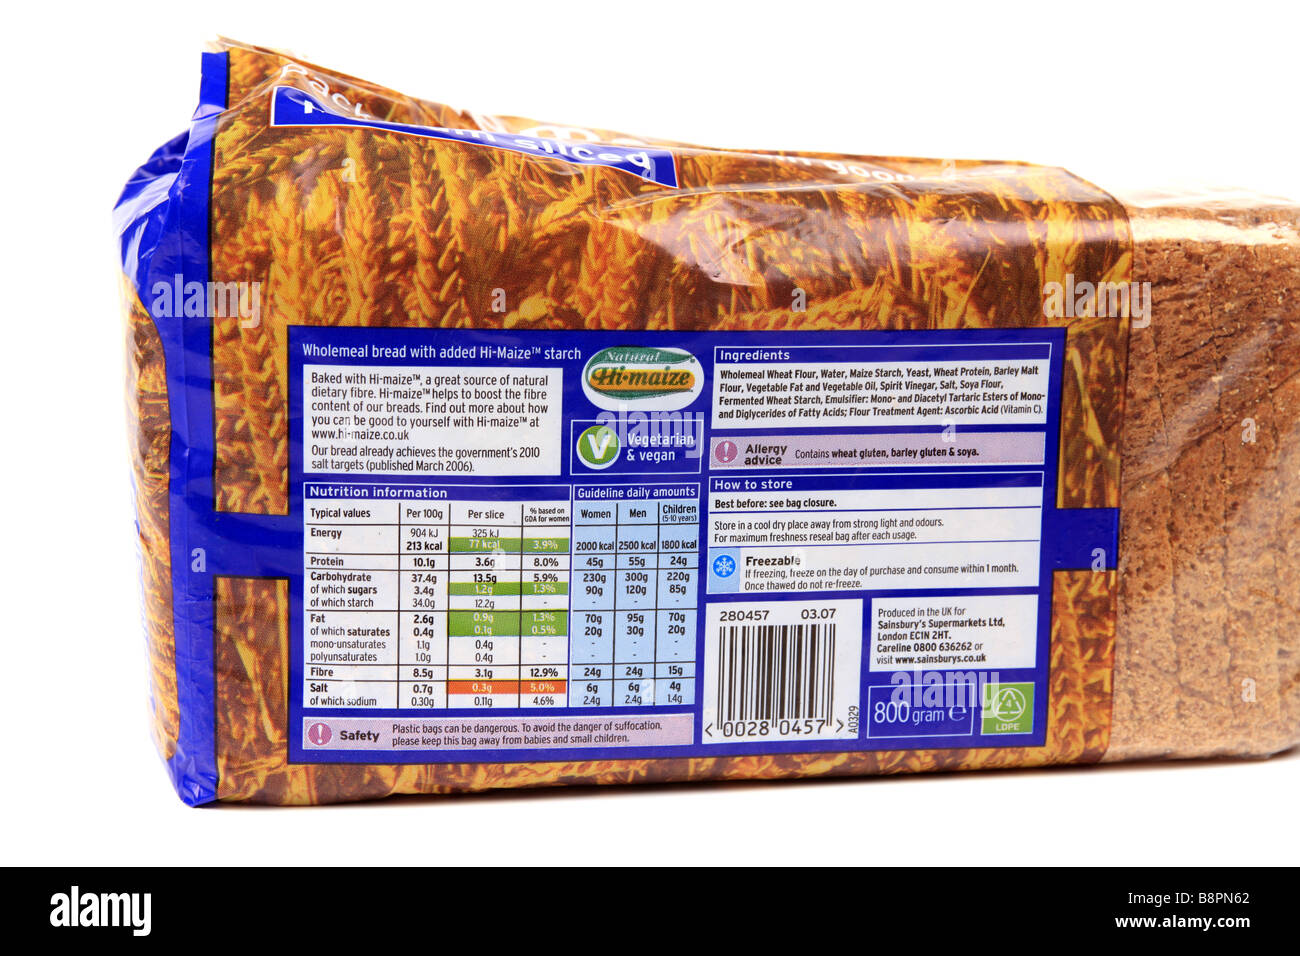 Food label on the packaging of a brown wholemeal loaf of bread - Stock Image